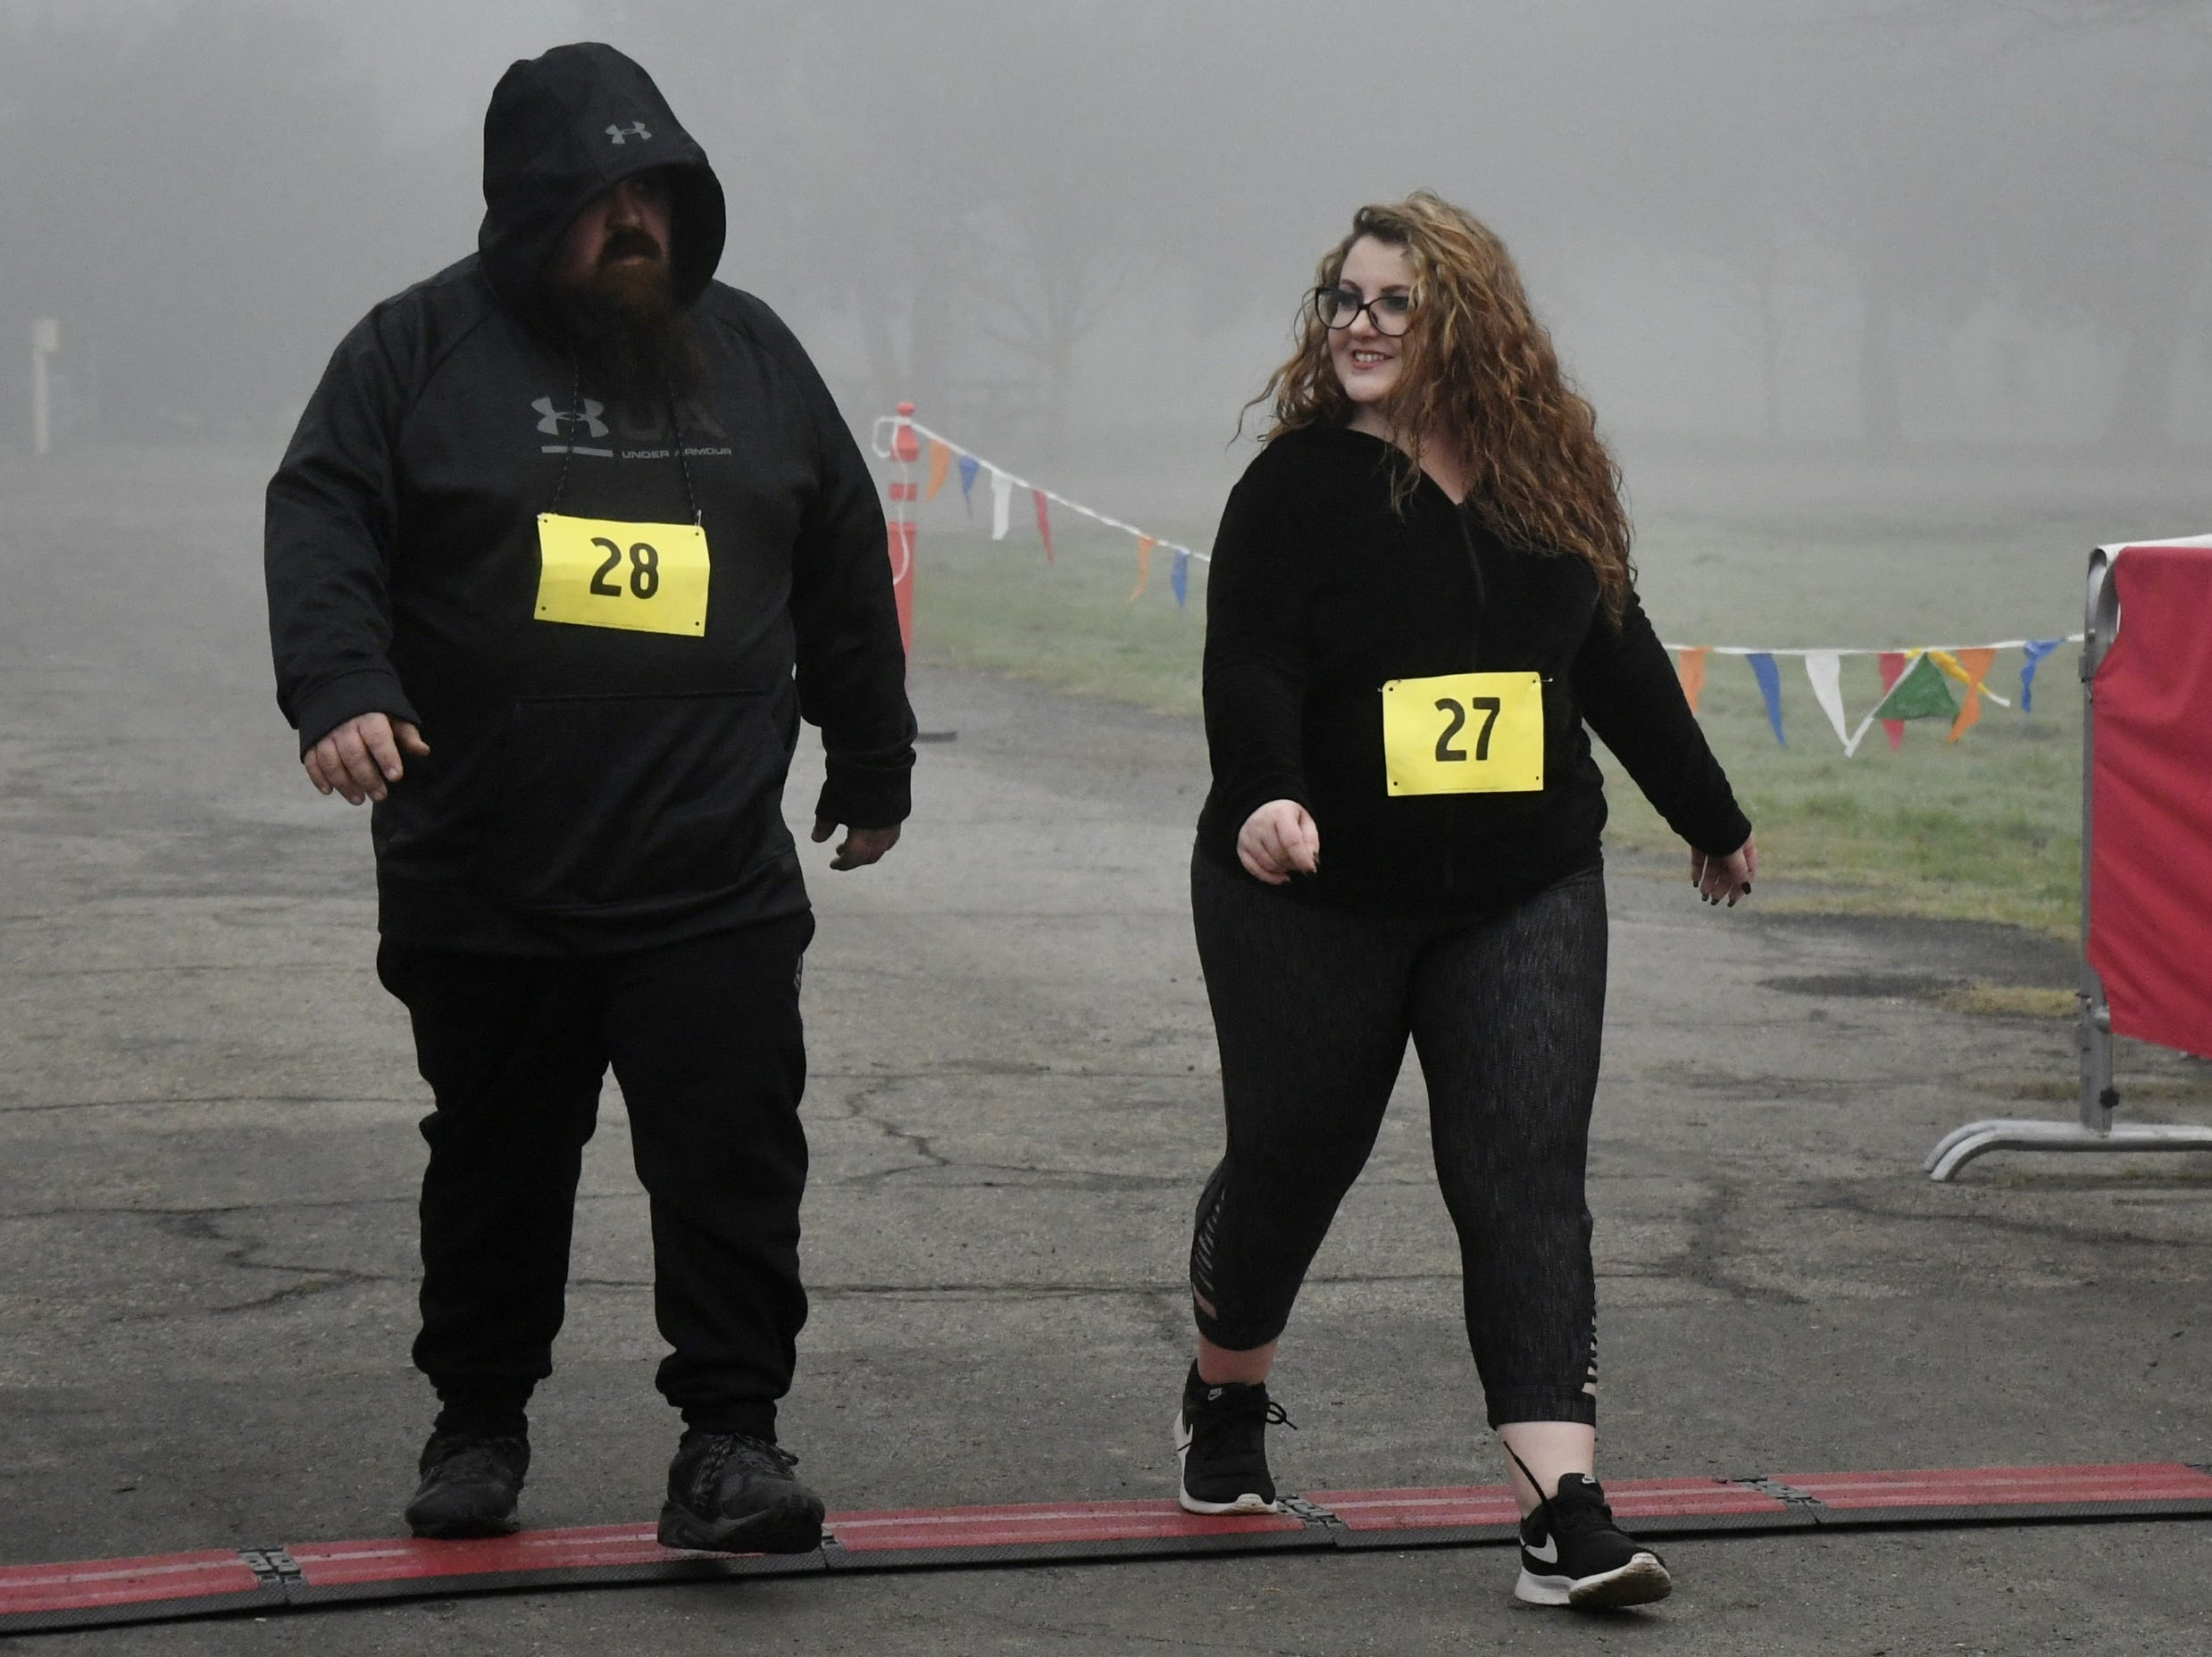 More than 200 runners hit the pavement for the 7th annual Justice Run: Run for Freedom 5K and one-mile walk at Mooney Grove Park on Saturday, January 19, 2019.